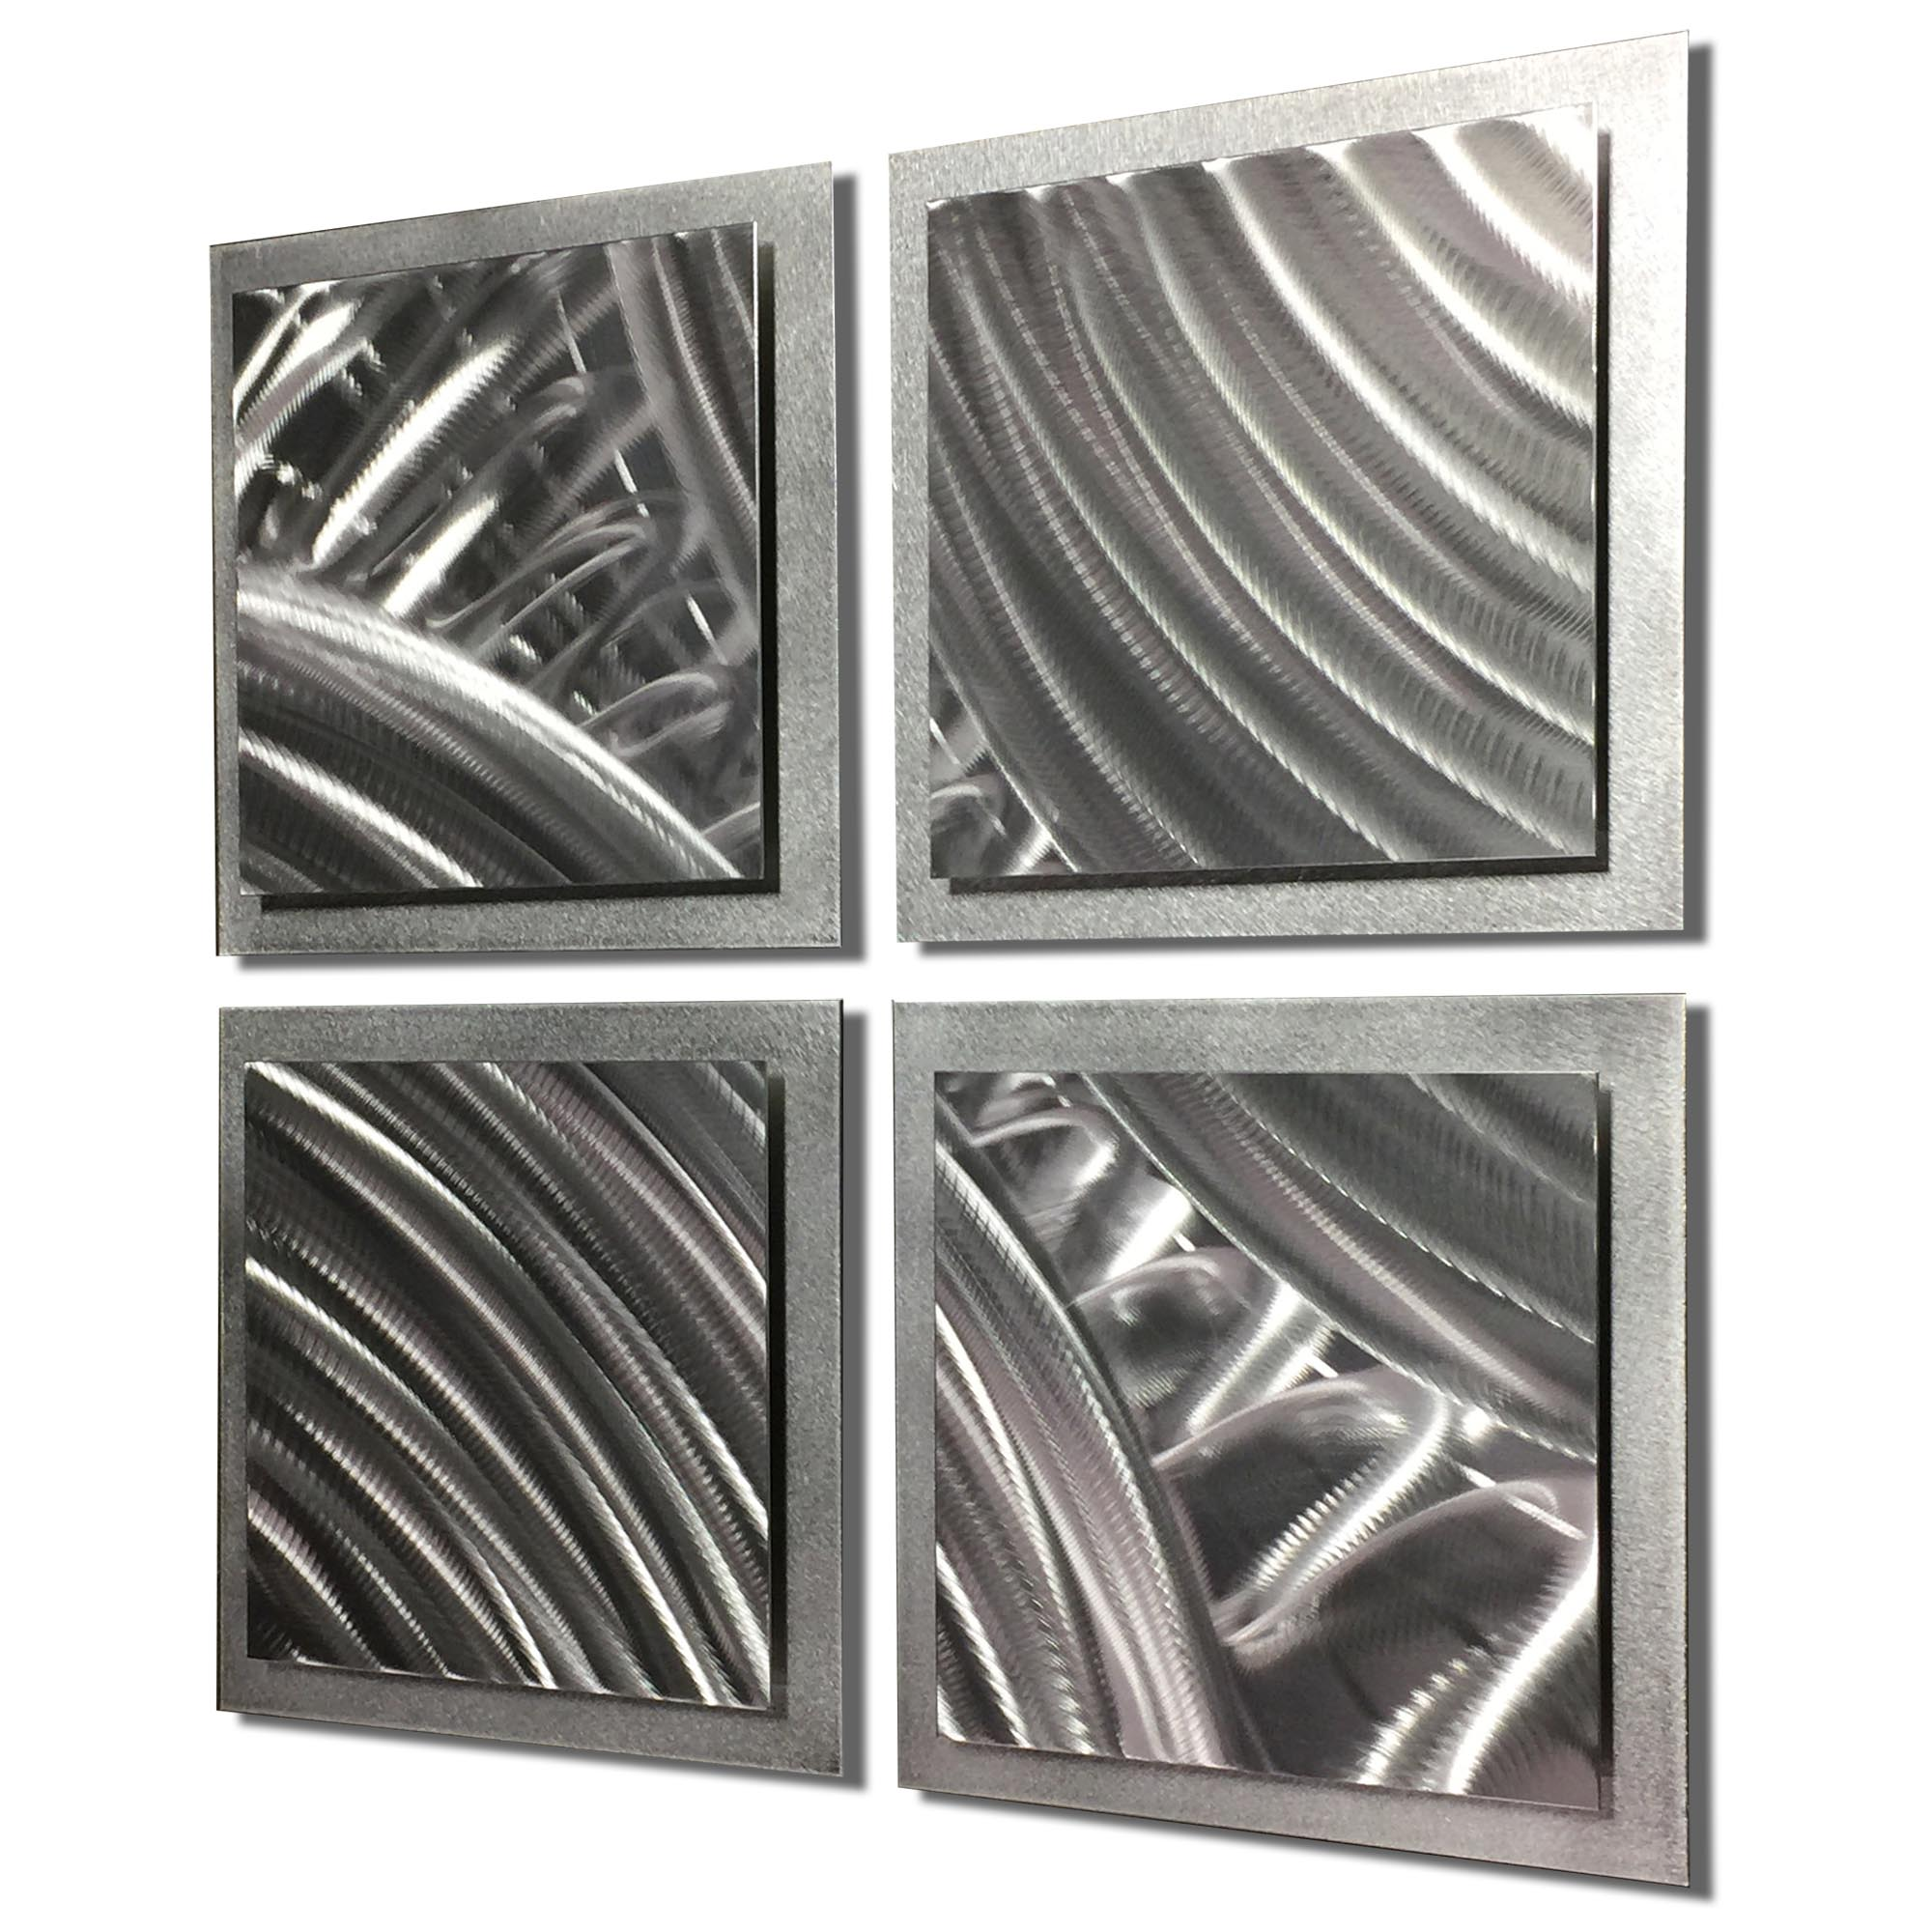 Silver Divisions 25x25in. Natural Aluminum Abstract Decor - Image 2